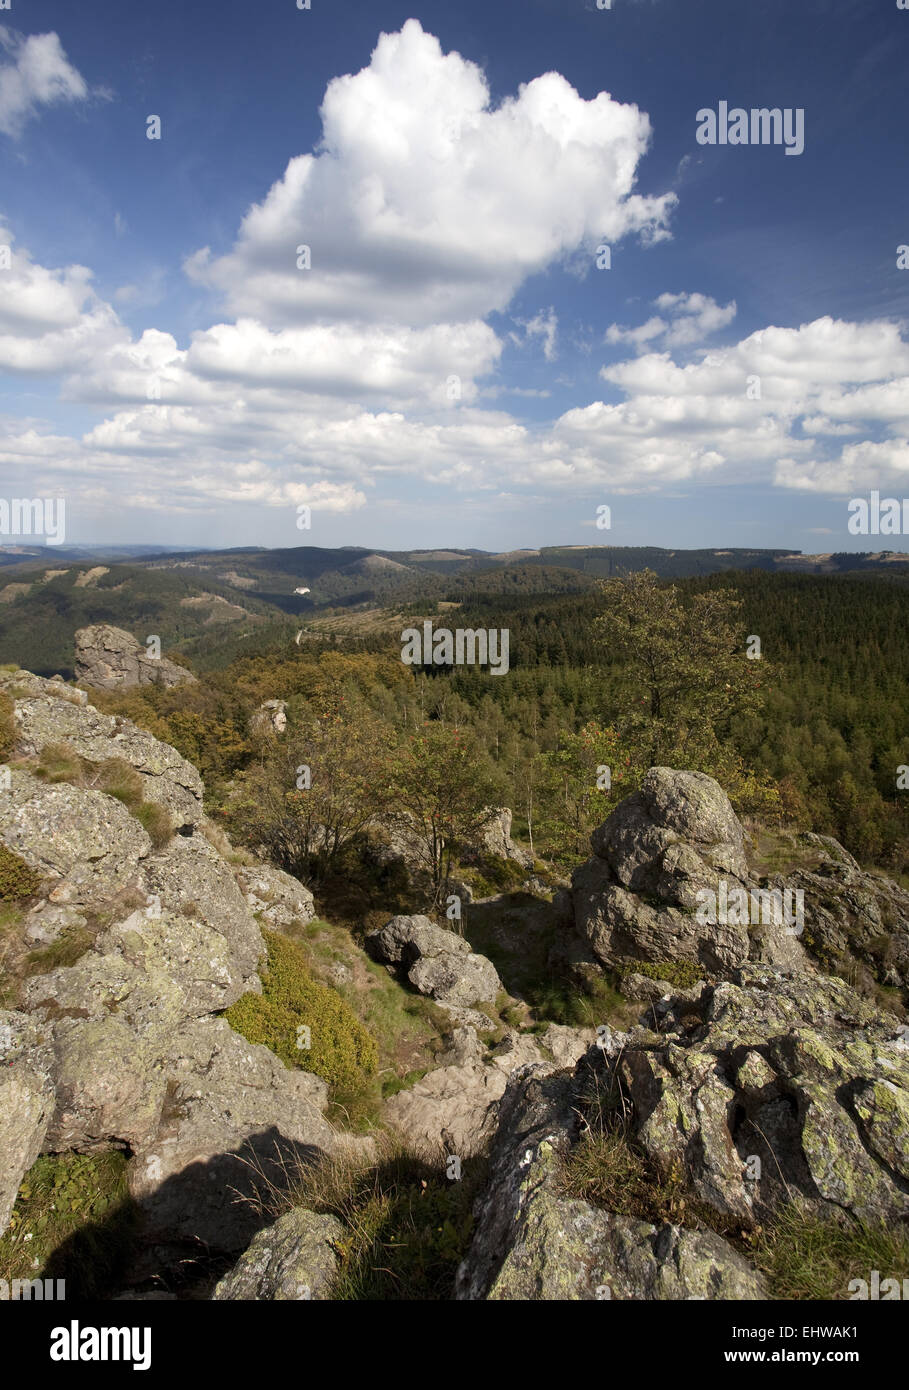 View from the Bruchhauser stones in Olsberg. - Stock Image